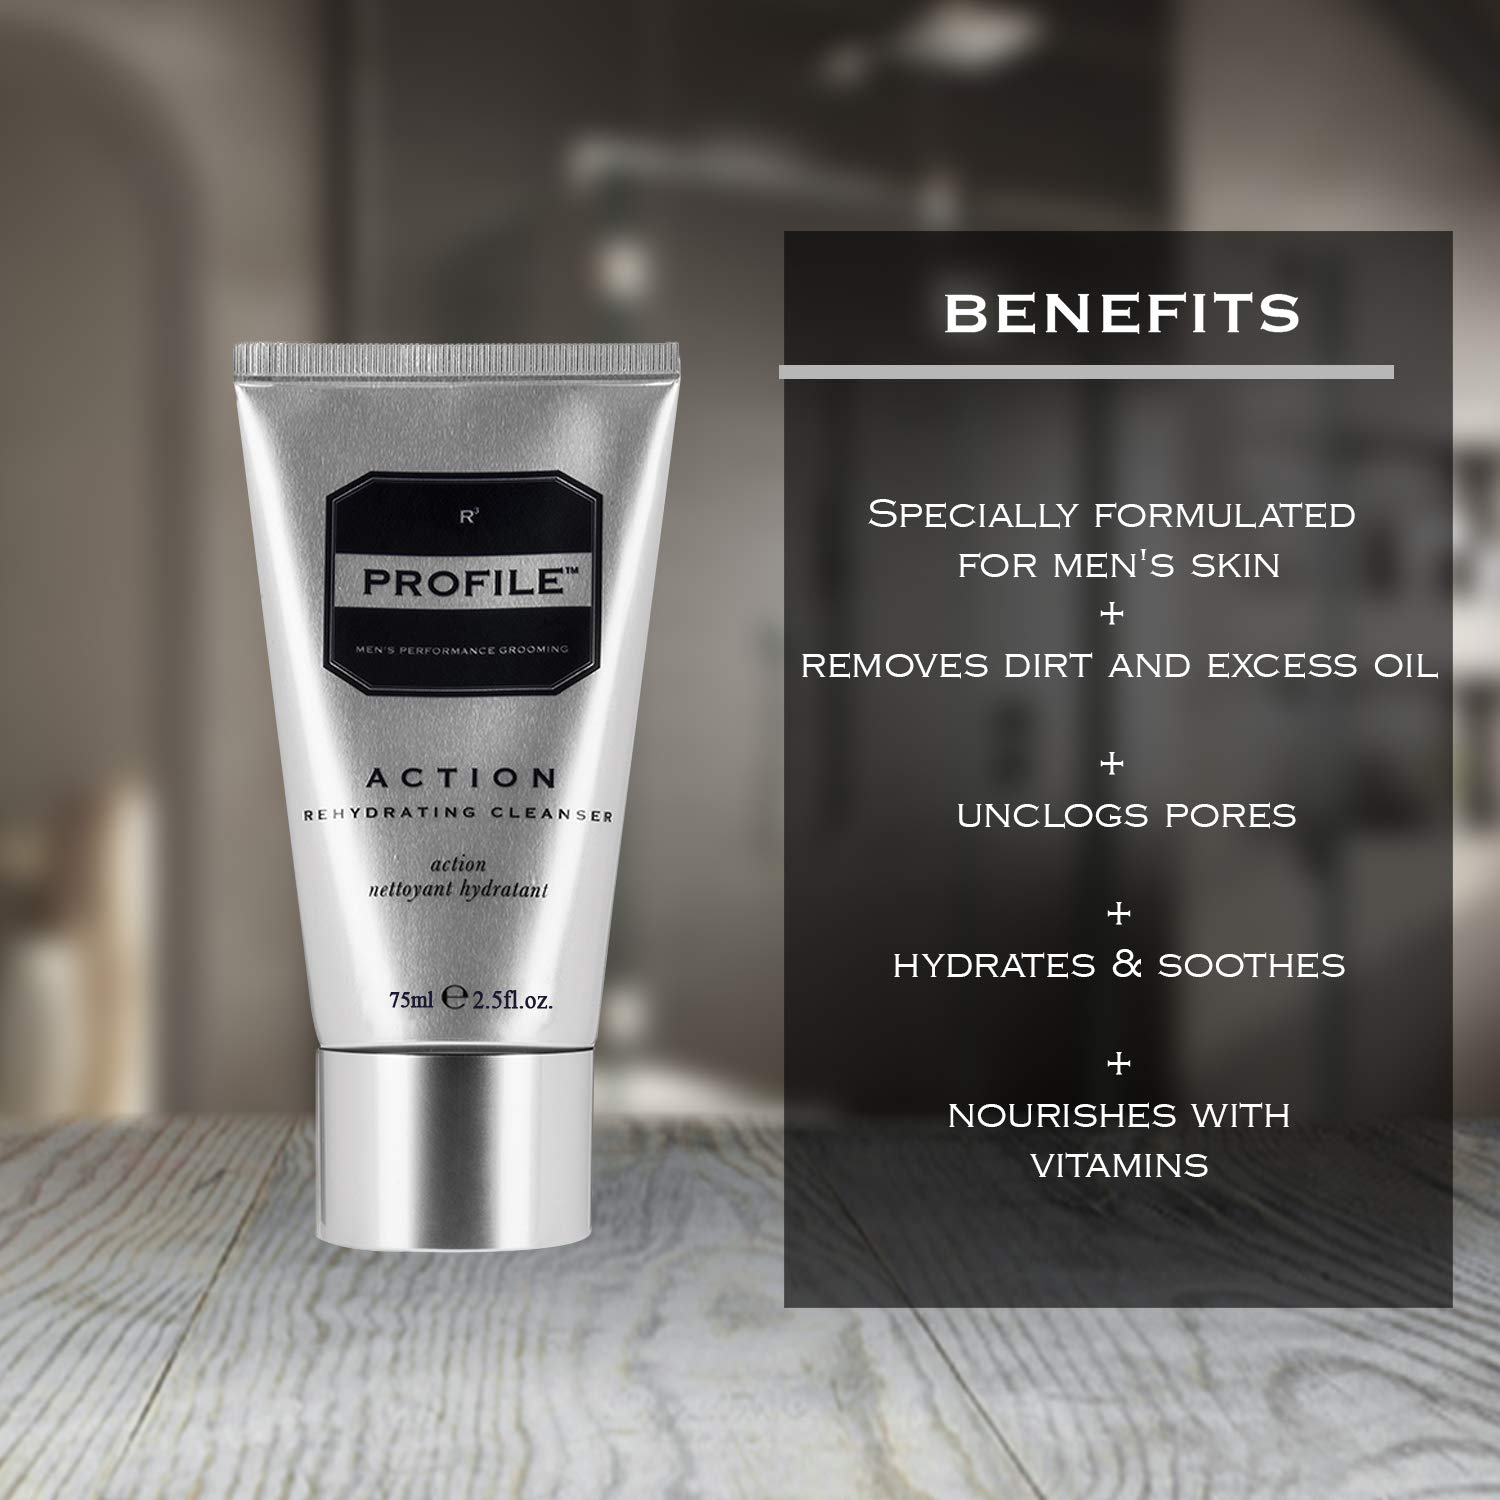 Profile ACTION Rehydrating Cleanser – for Men, Deep Clean Facial Hydrating Men s Face Wash with Aloe Vera 5 fl oz.